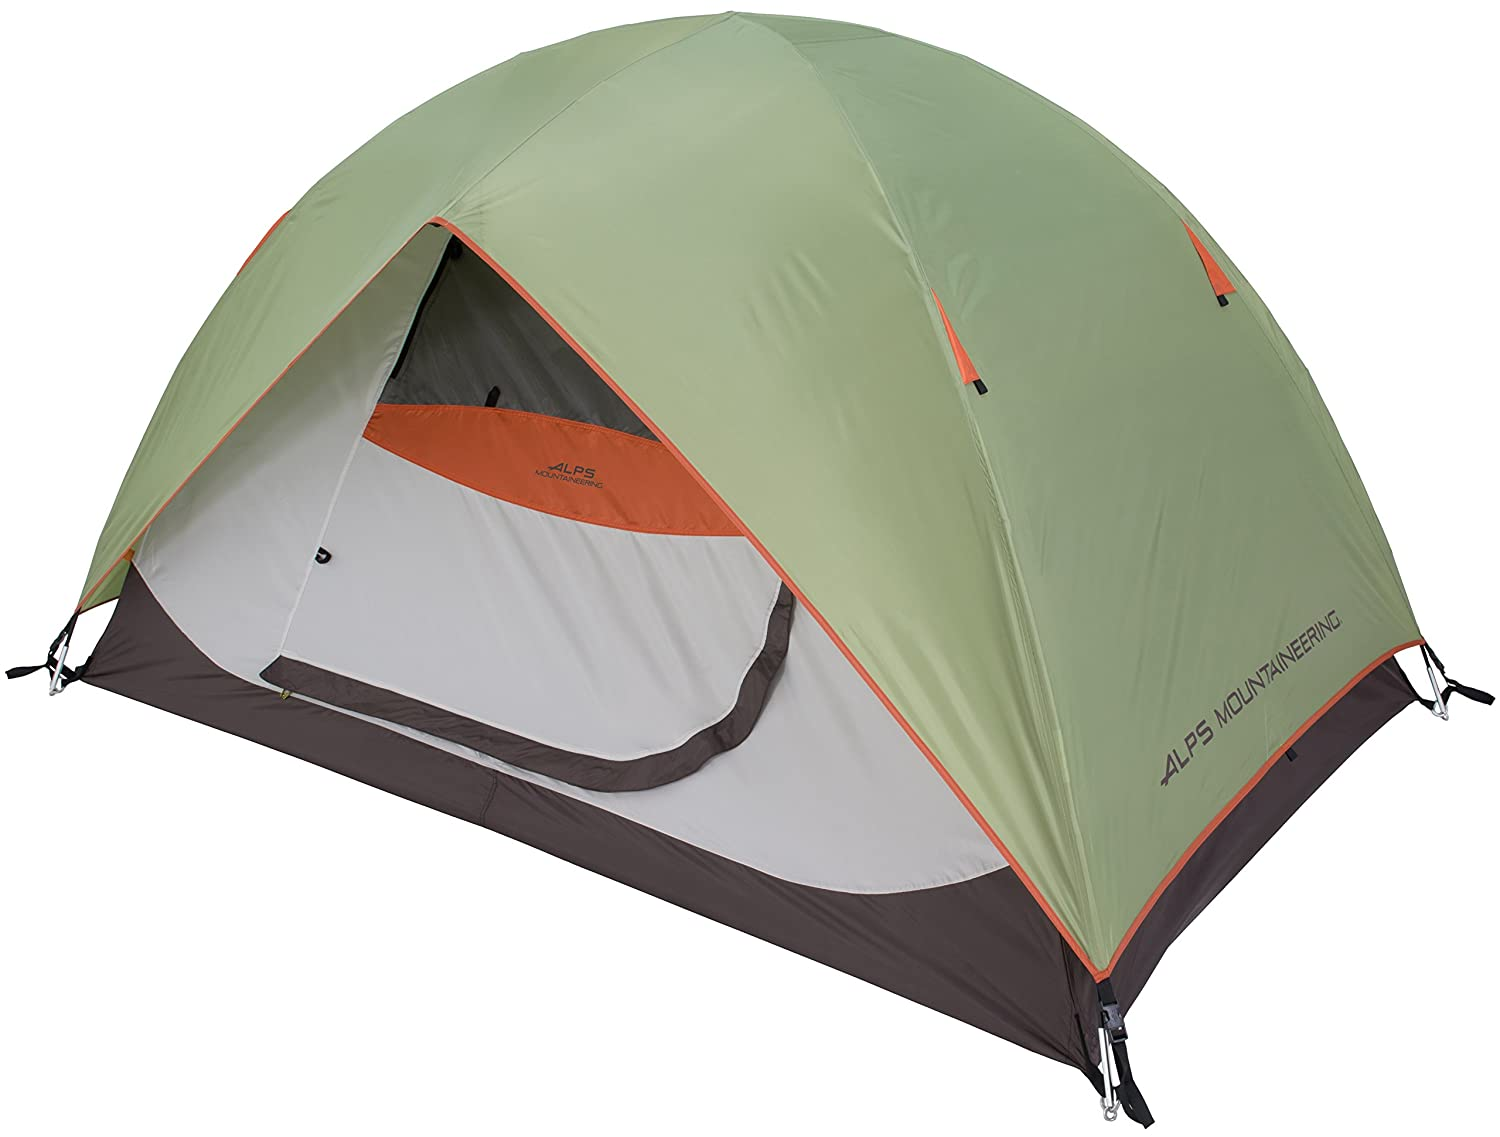 ALPS Mountaineering Meramac Tent - 2 Person, Best cheap tent